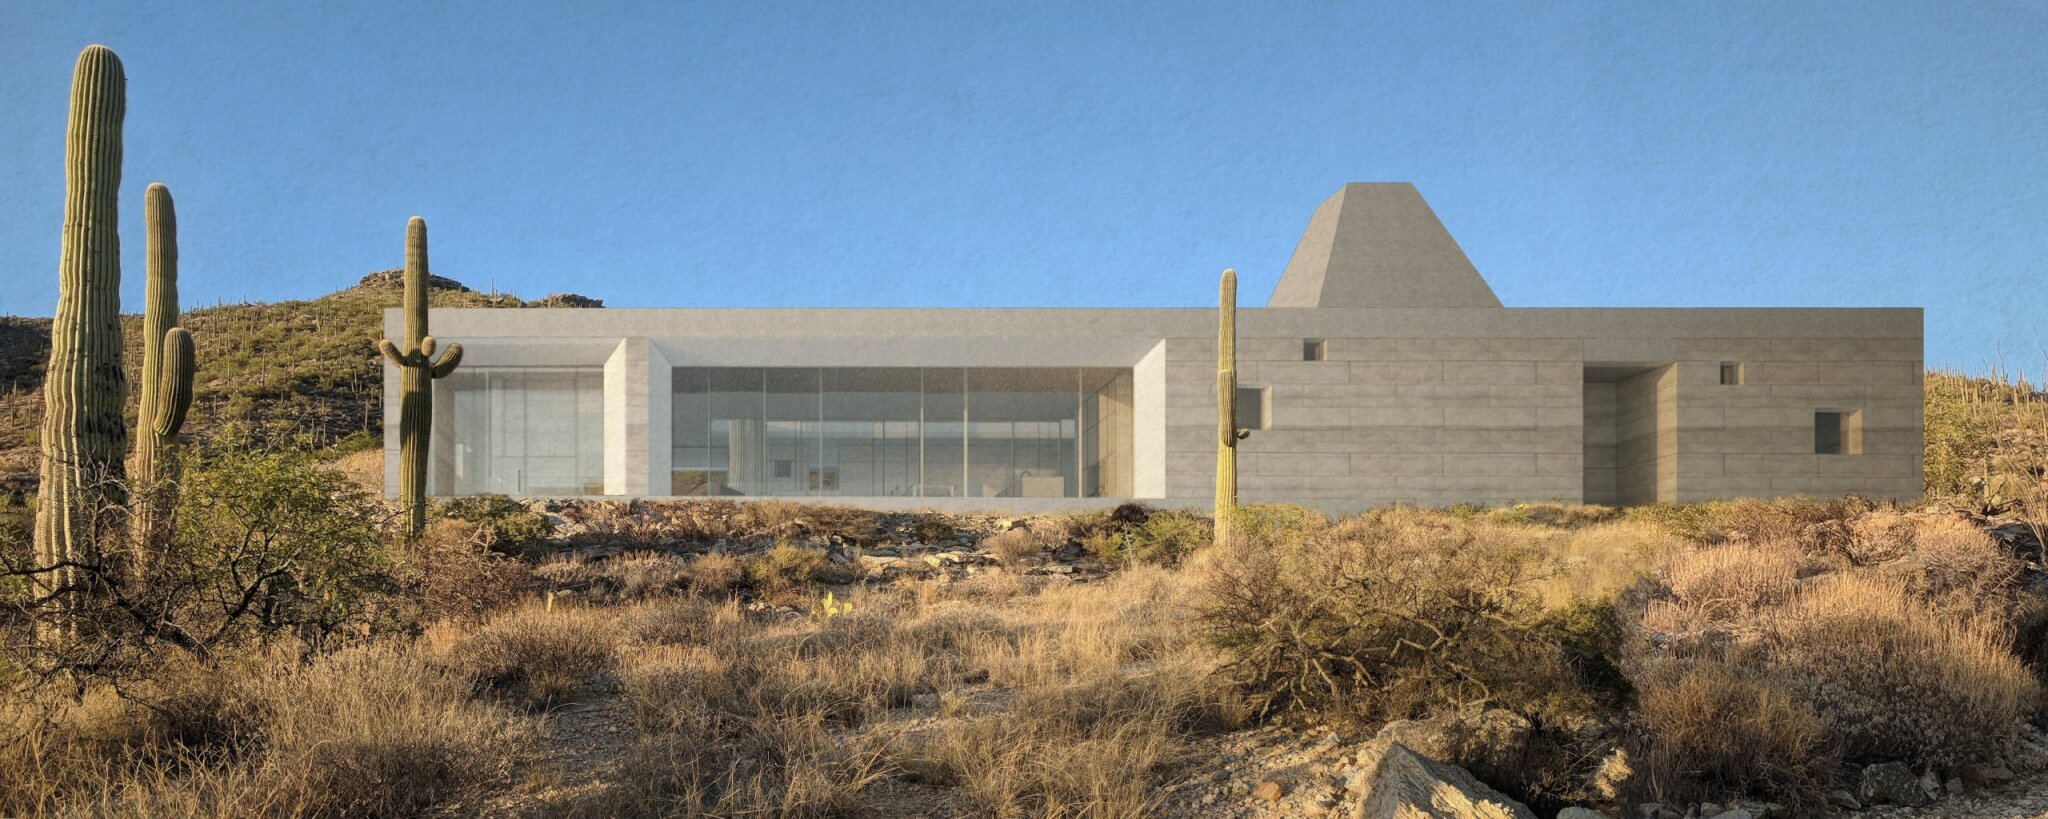 PS_Gneiss House_Render_Approach